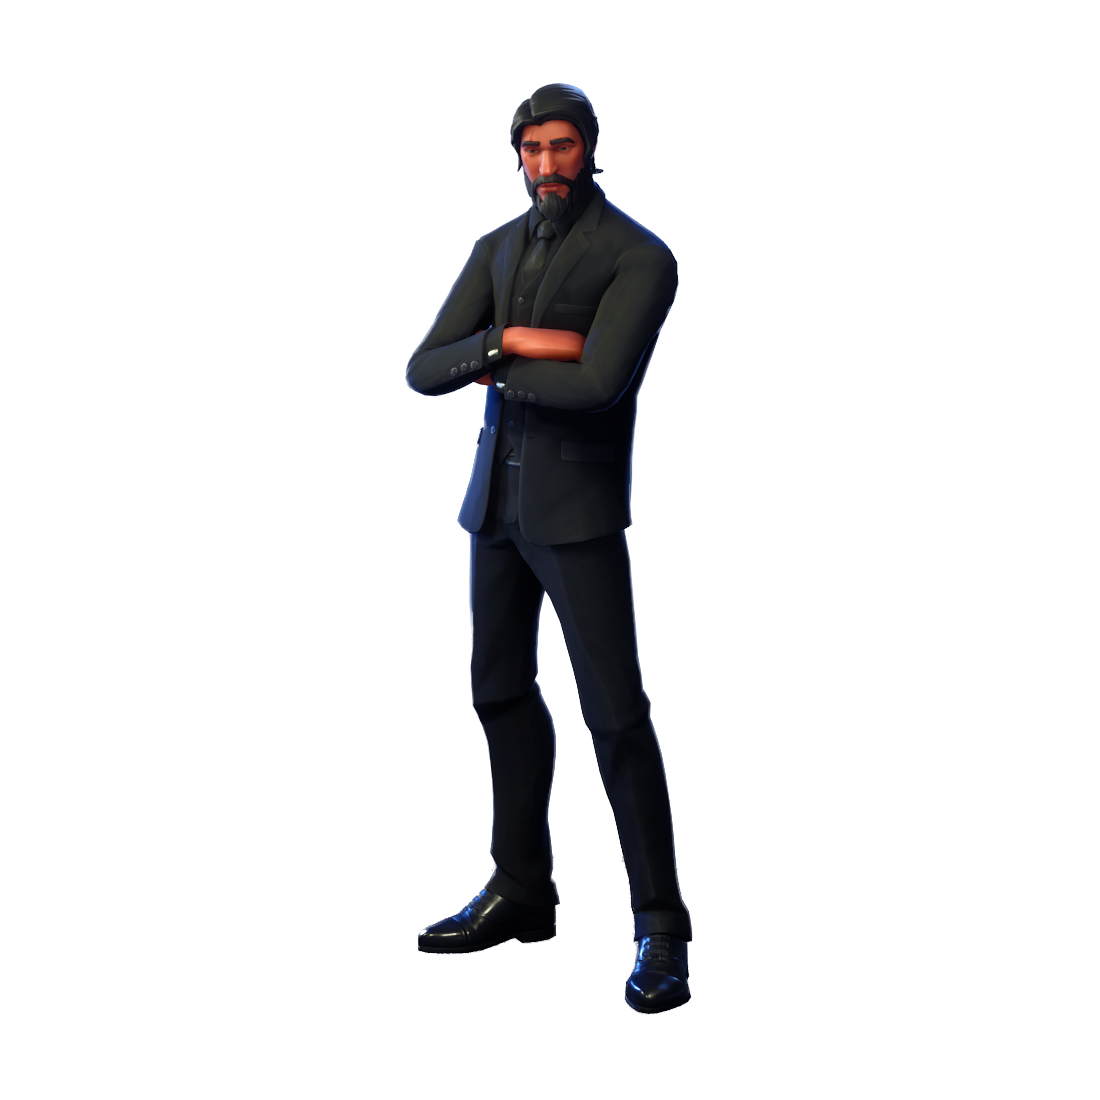 fnbr co fortnite cosmetics game night clip art free Adult Game Night Clip Art